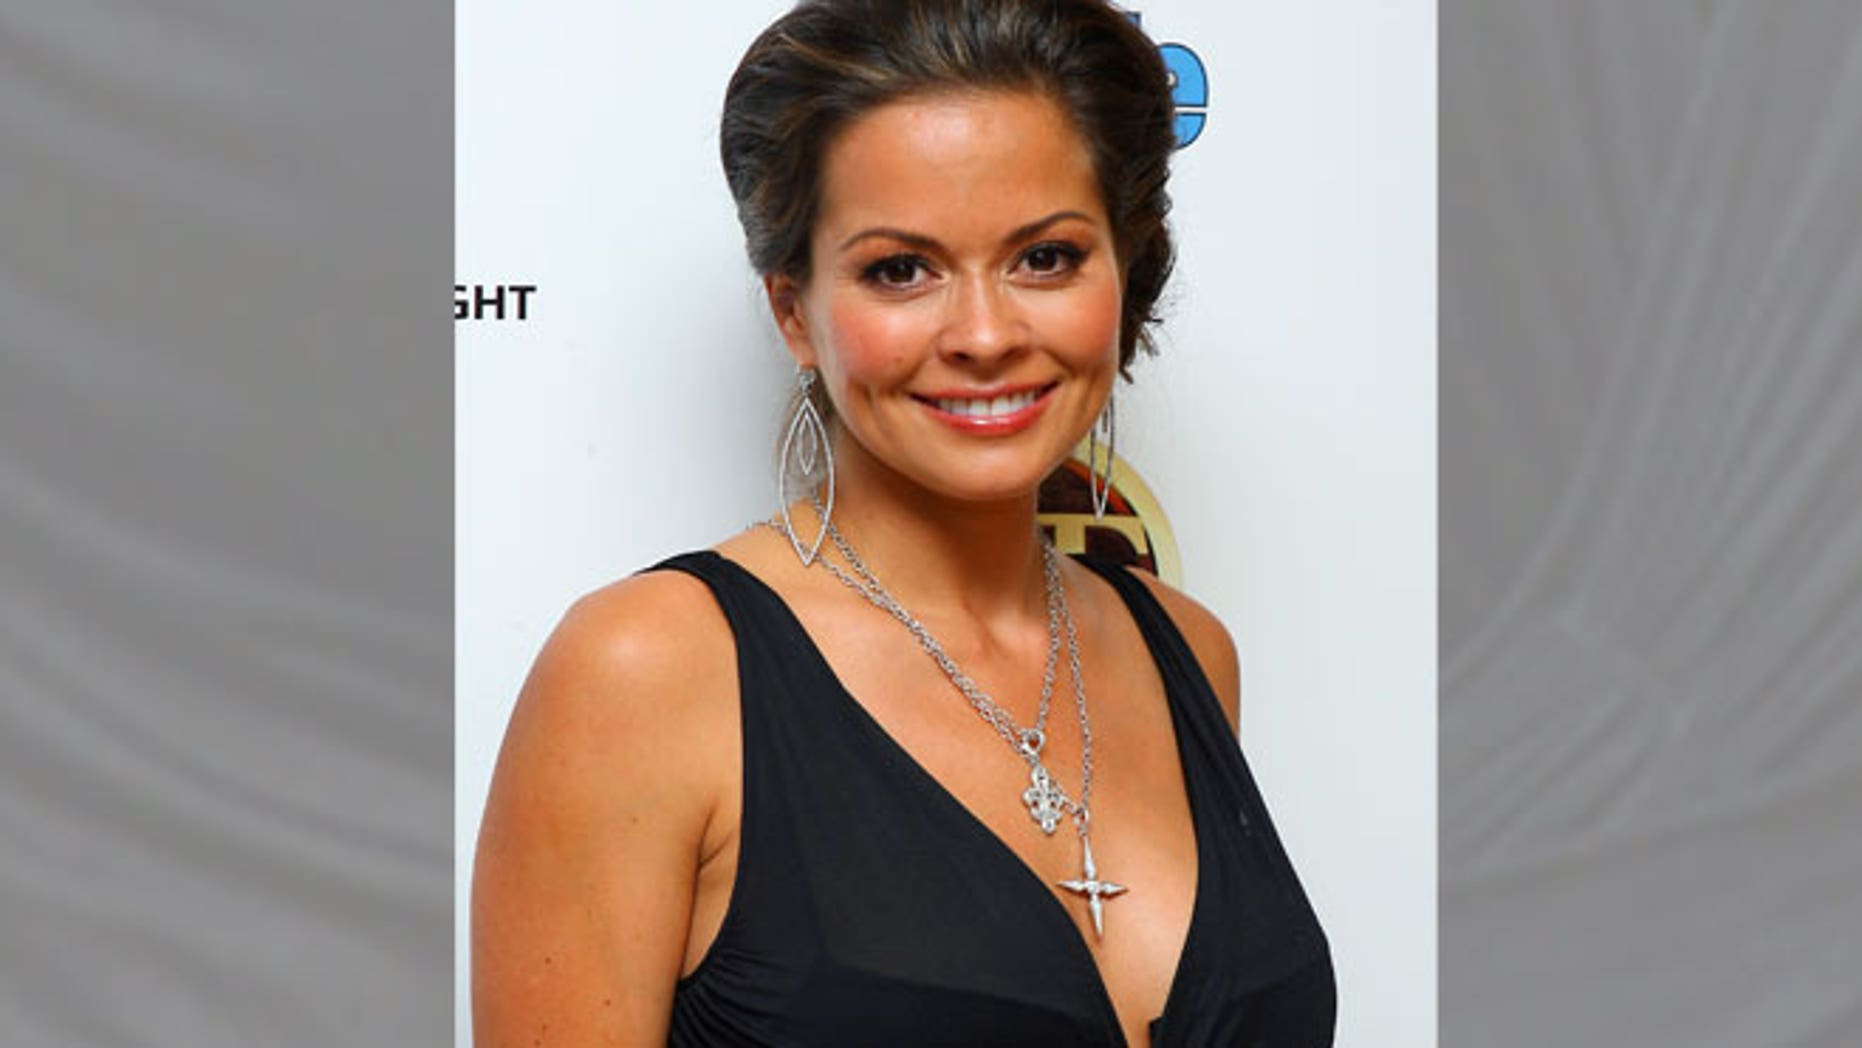 Brooke Burke-Charvet Nude Photos 1